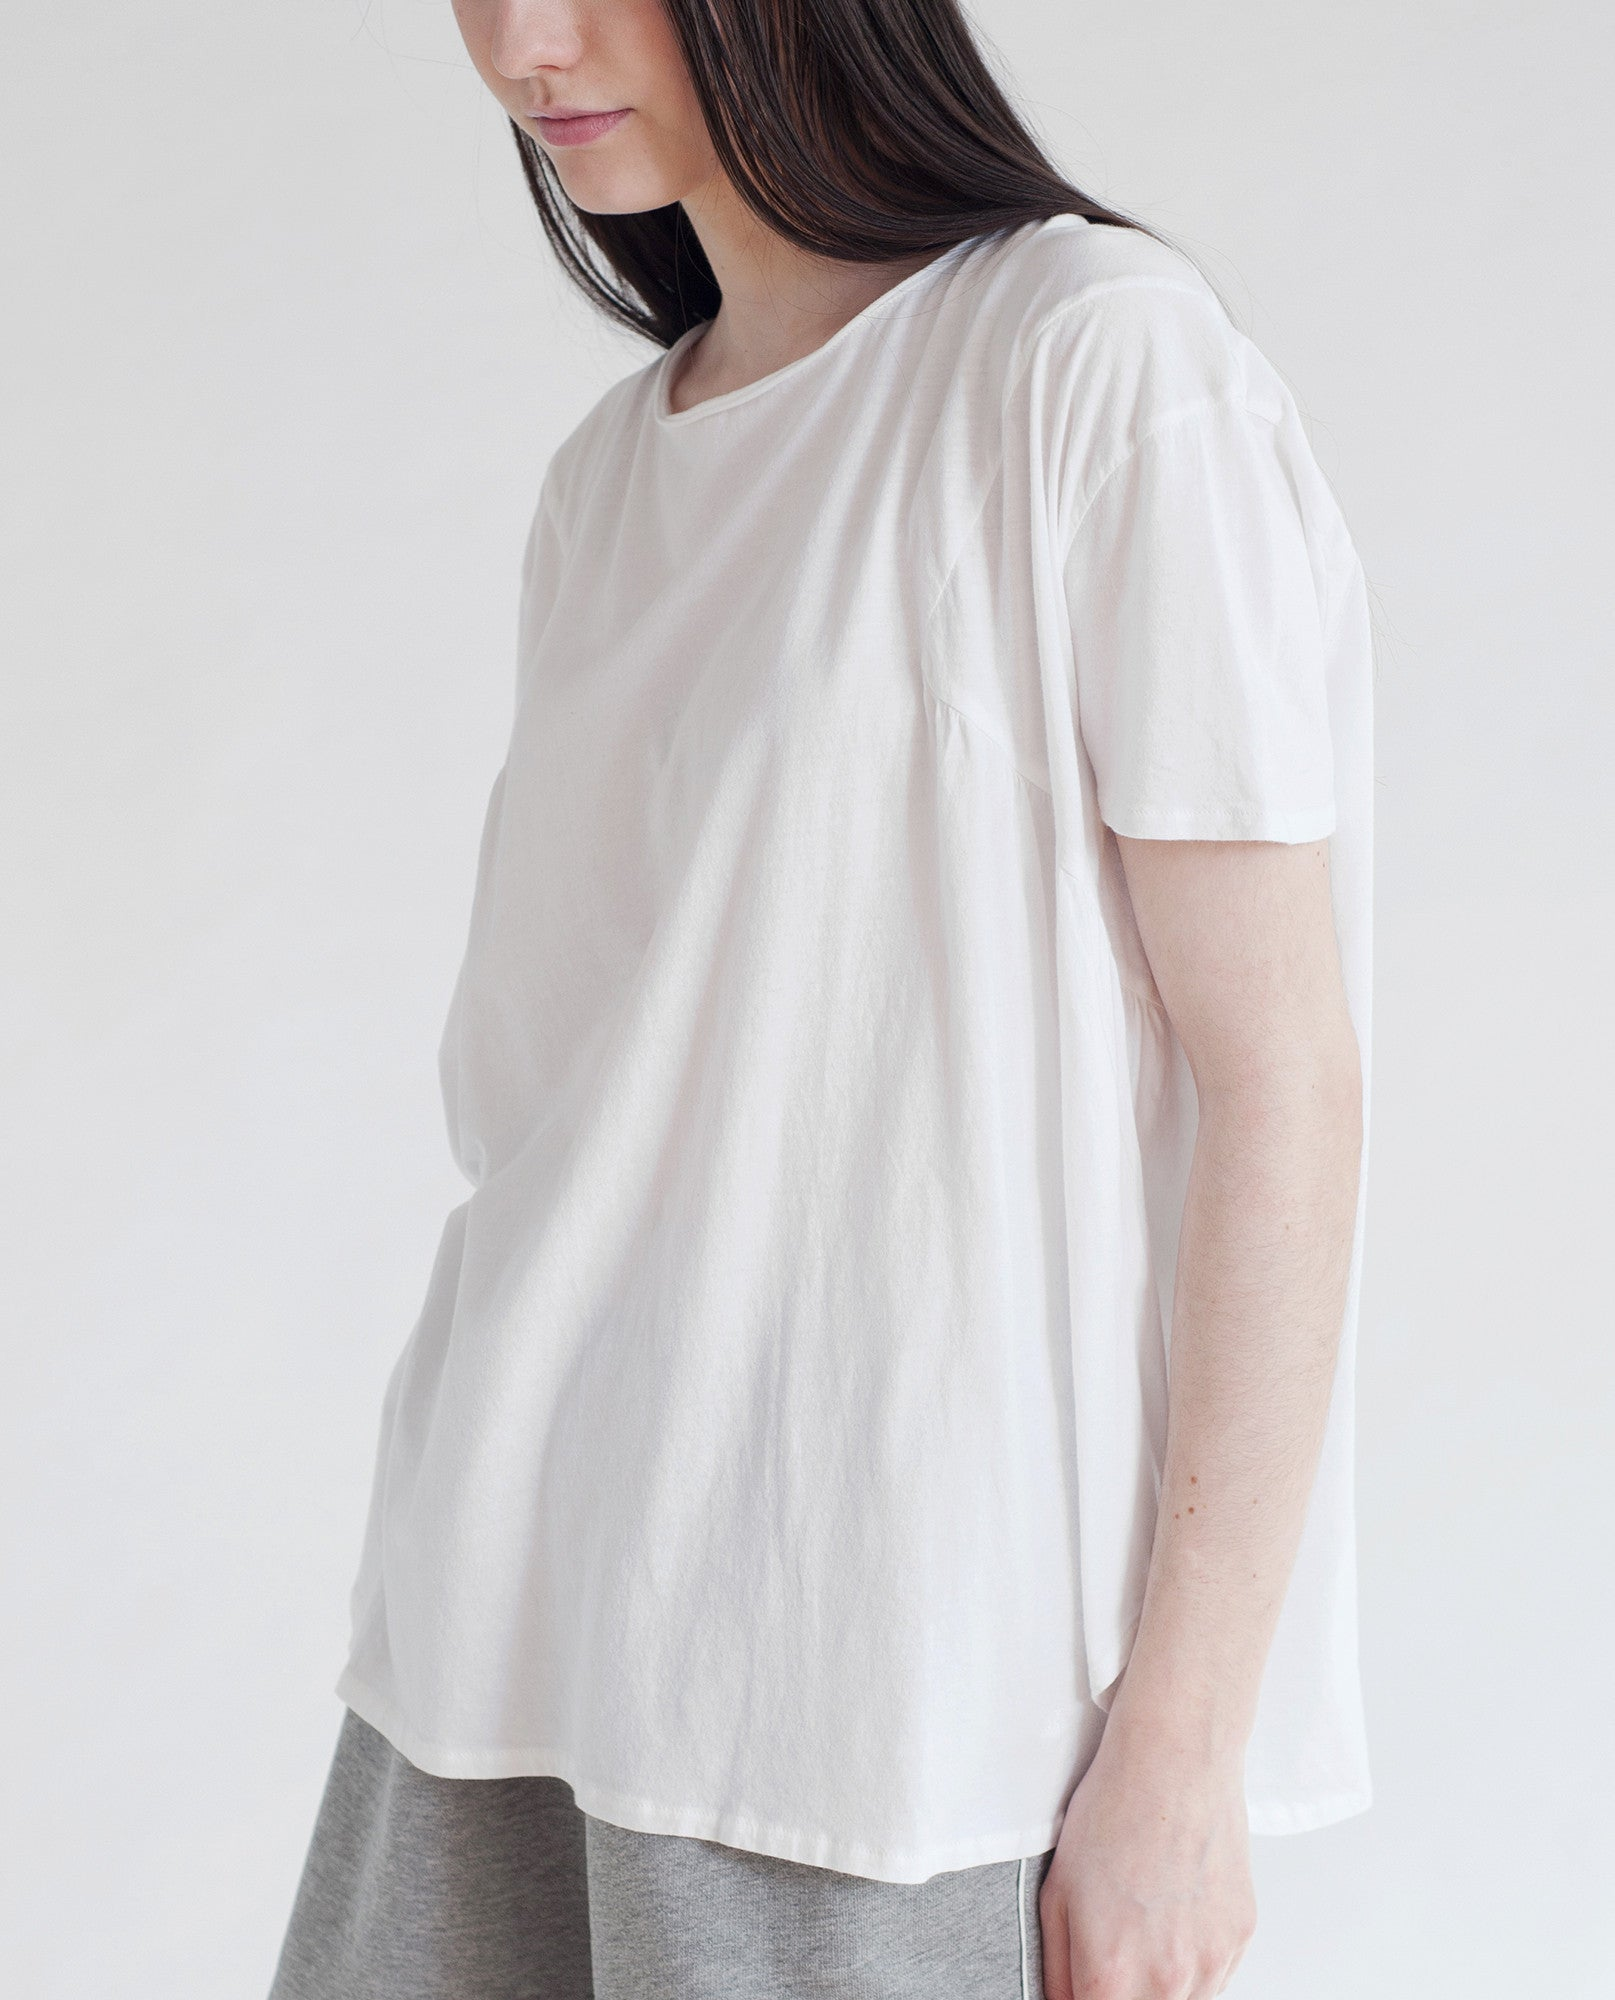 HOLLY Organic Cotton Top In White